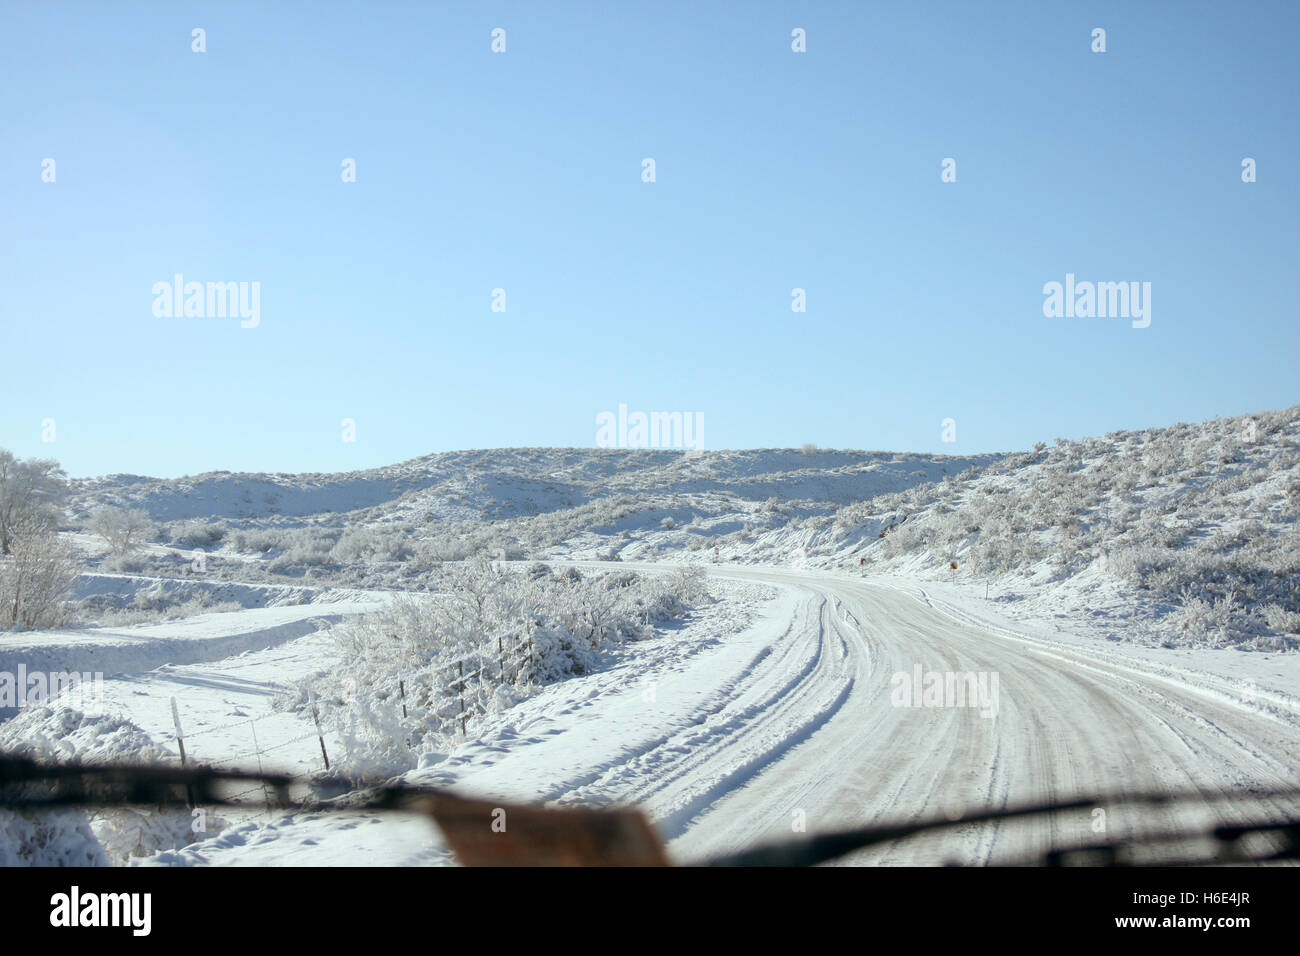 Driving on snowy roads in New Mexico - Stock Image